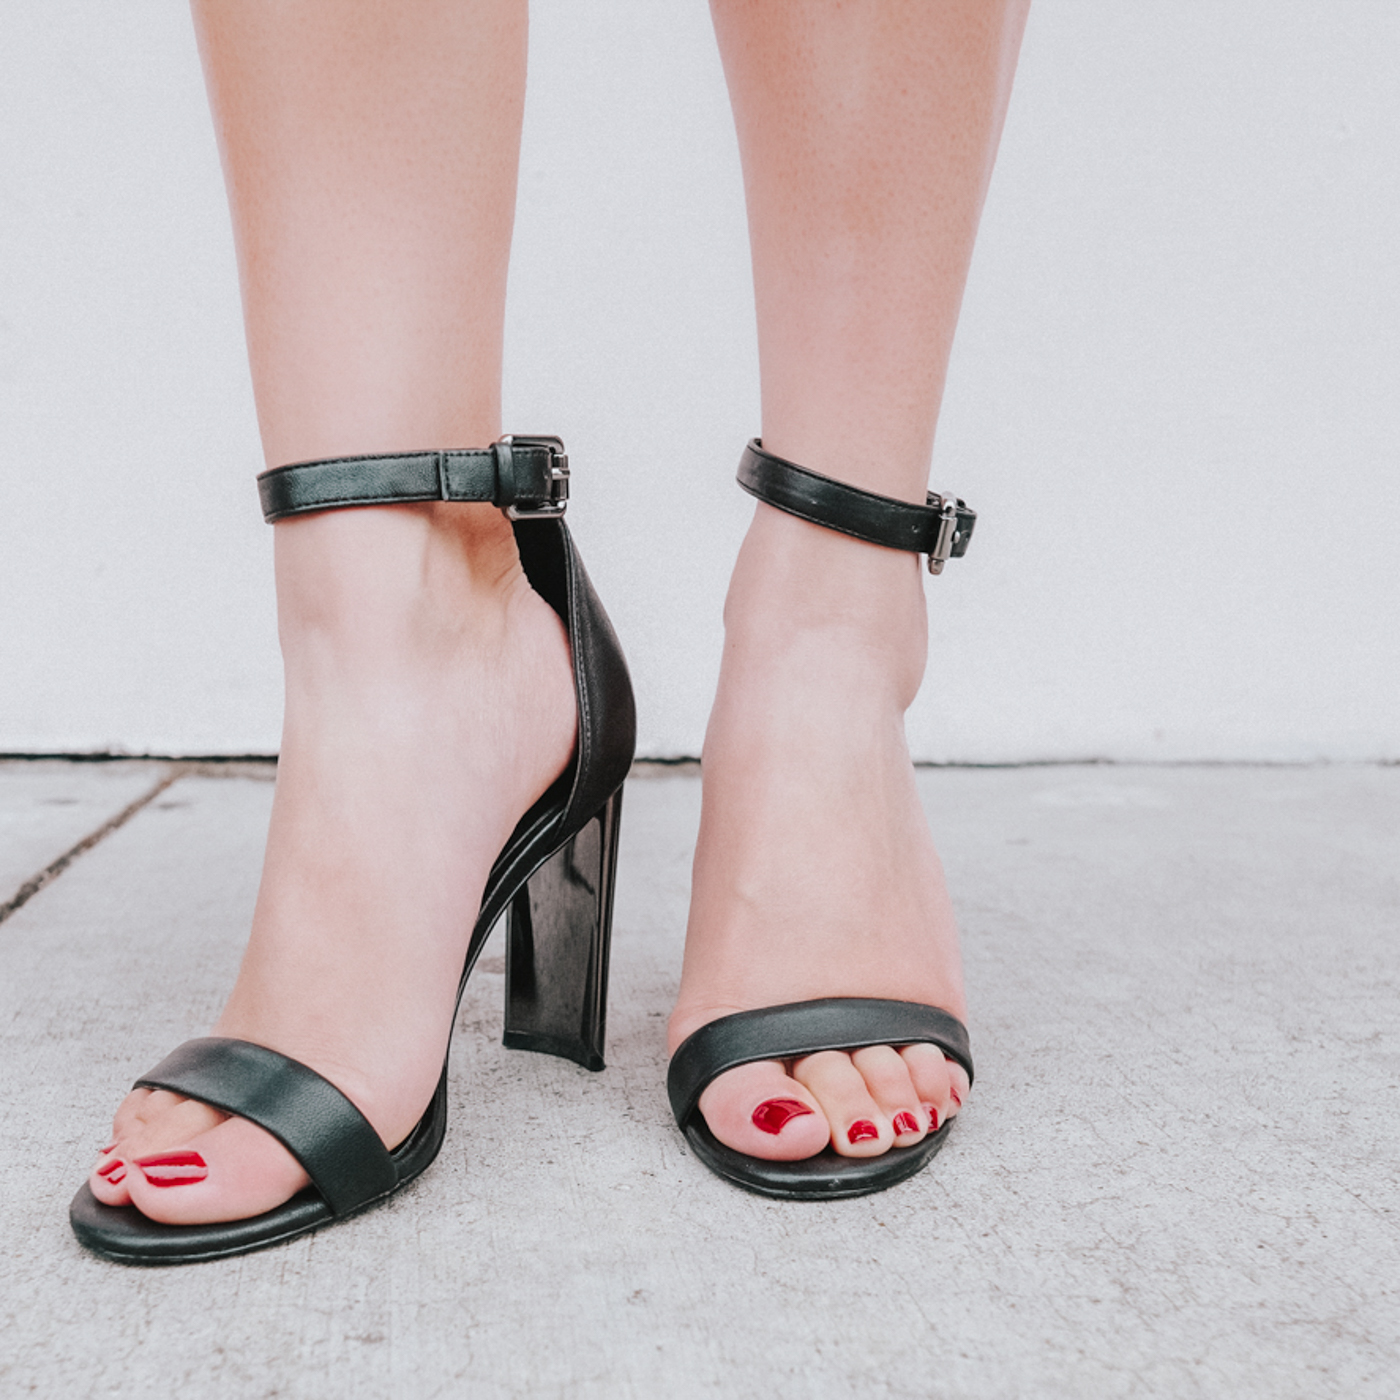 Witchery     •  Ashton Leather Heeled       Sandals    Cost:  $126.43  Times Worn as of 3/2019:  5   Cost/Times Worn:  $25.29  Cost/30 Wears:  $4.21